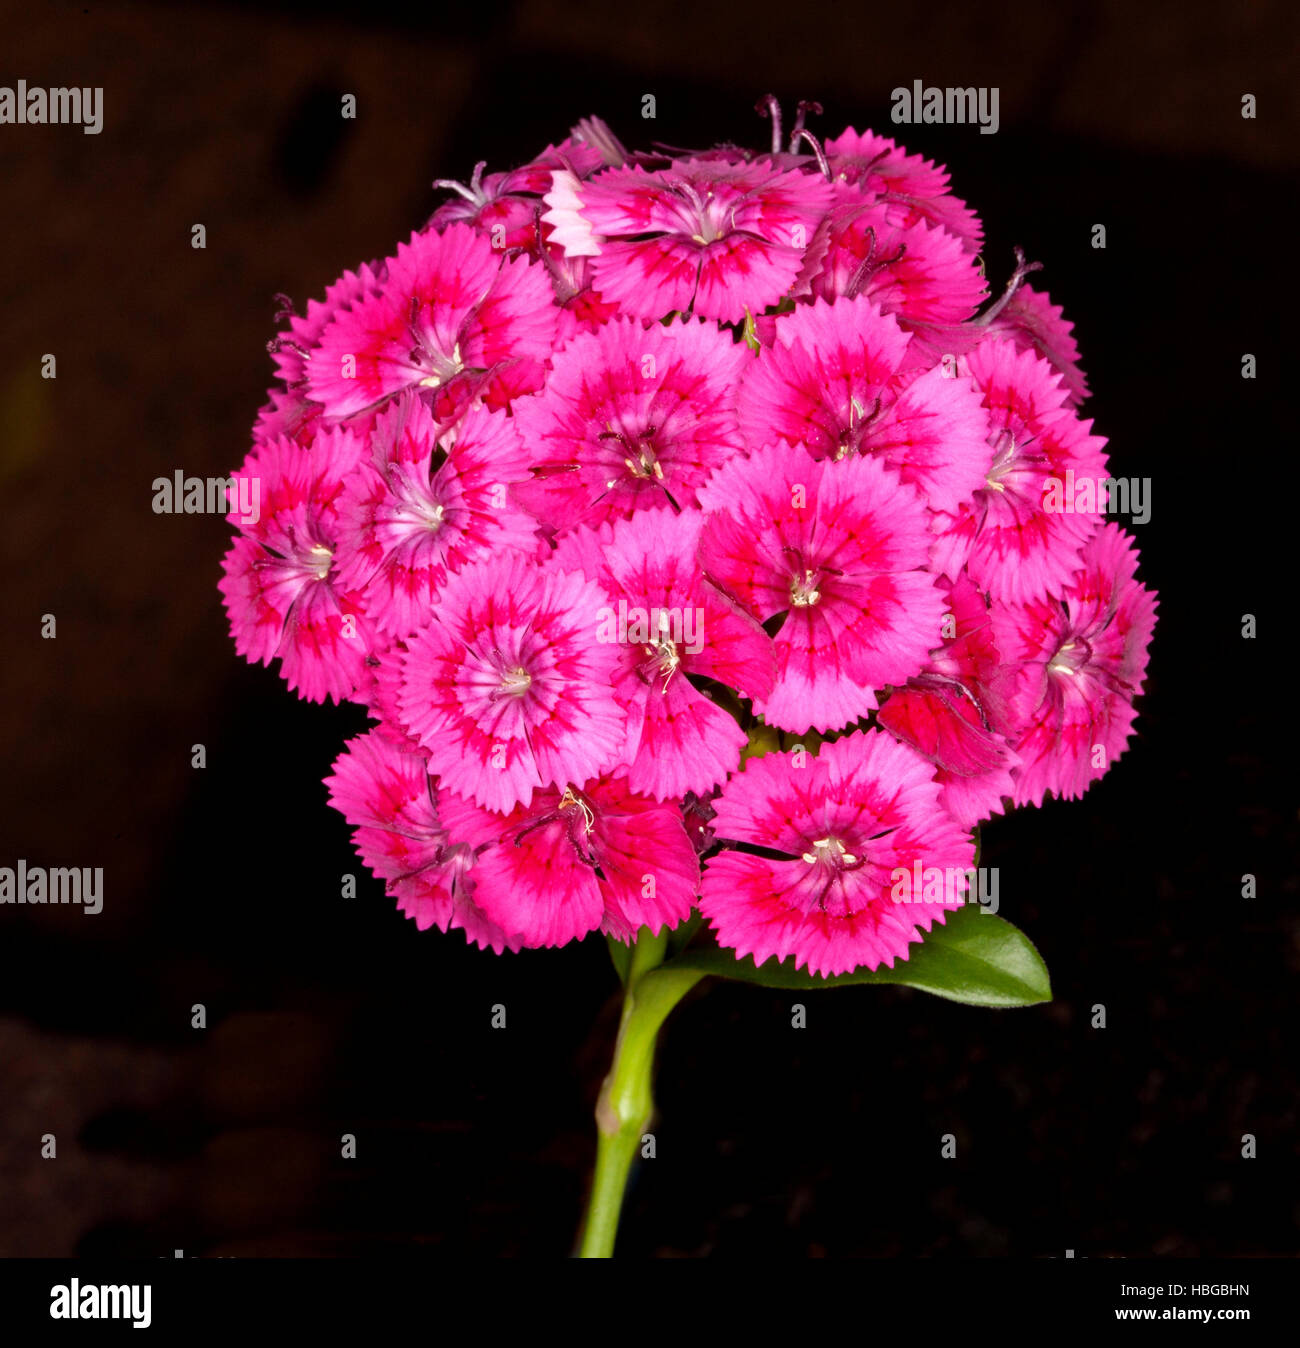 Domed cluster of stunning vivid magenta pink & red  flowers of Dianthus barbatus, Sweet William & green - Stock Image